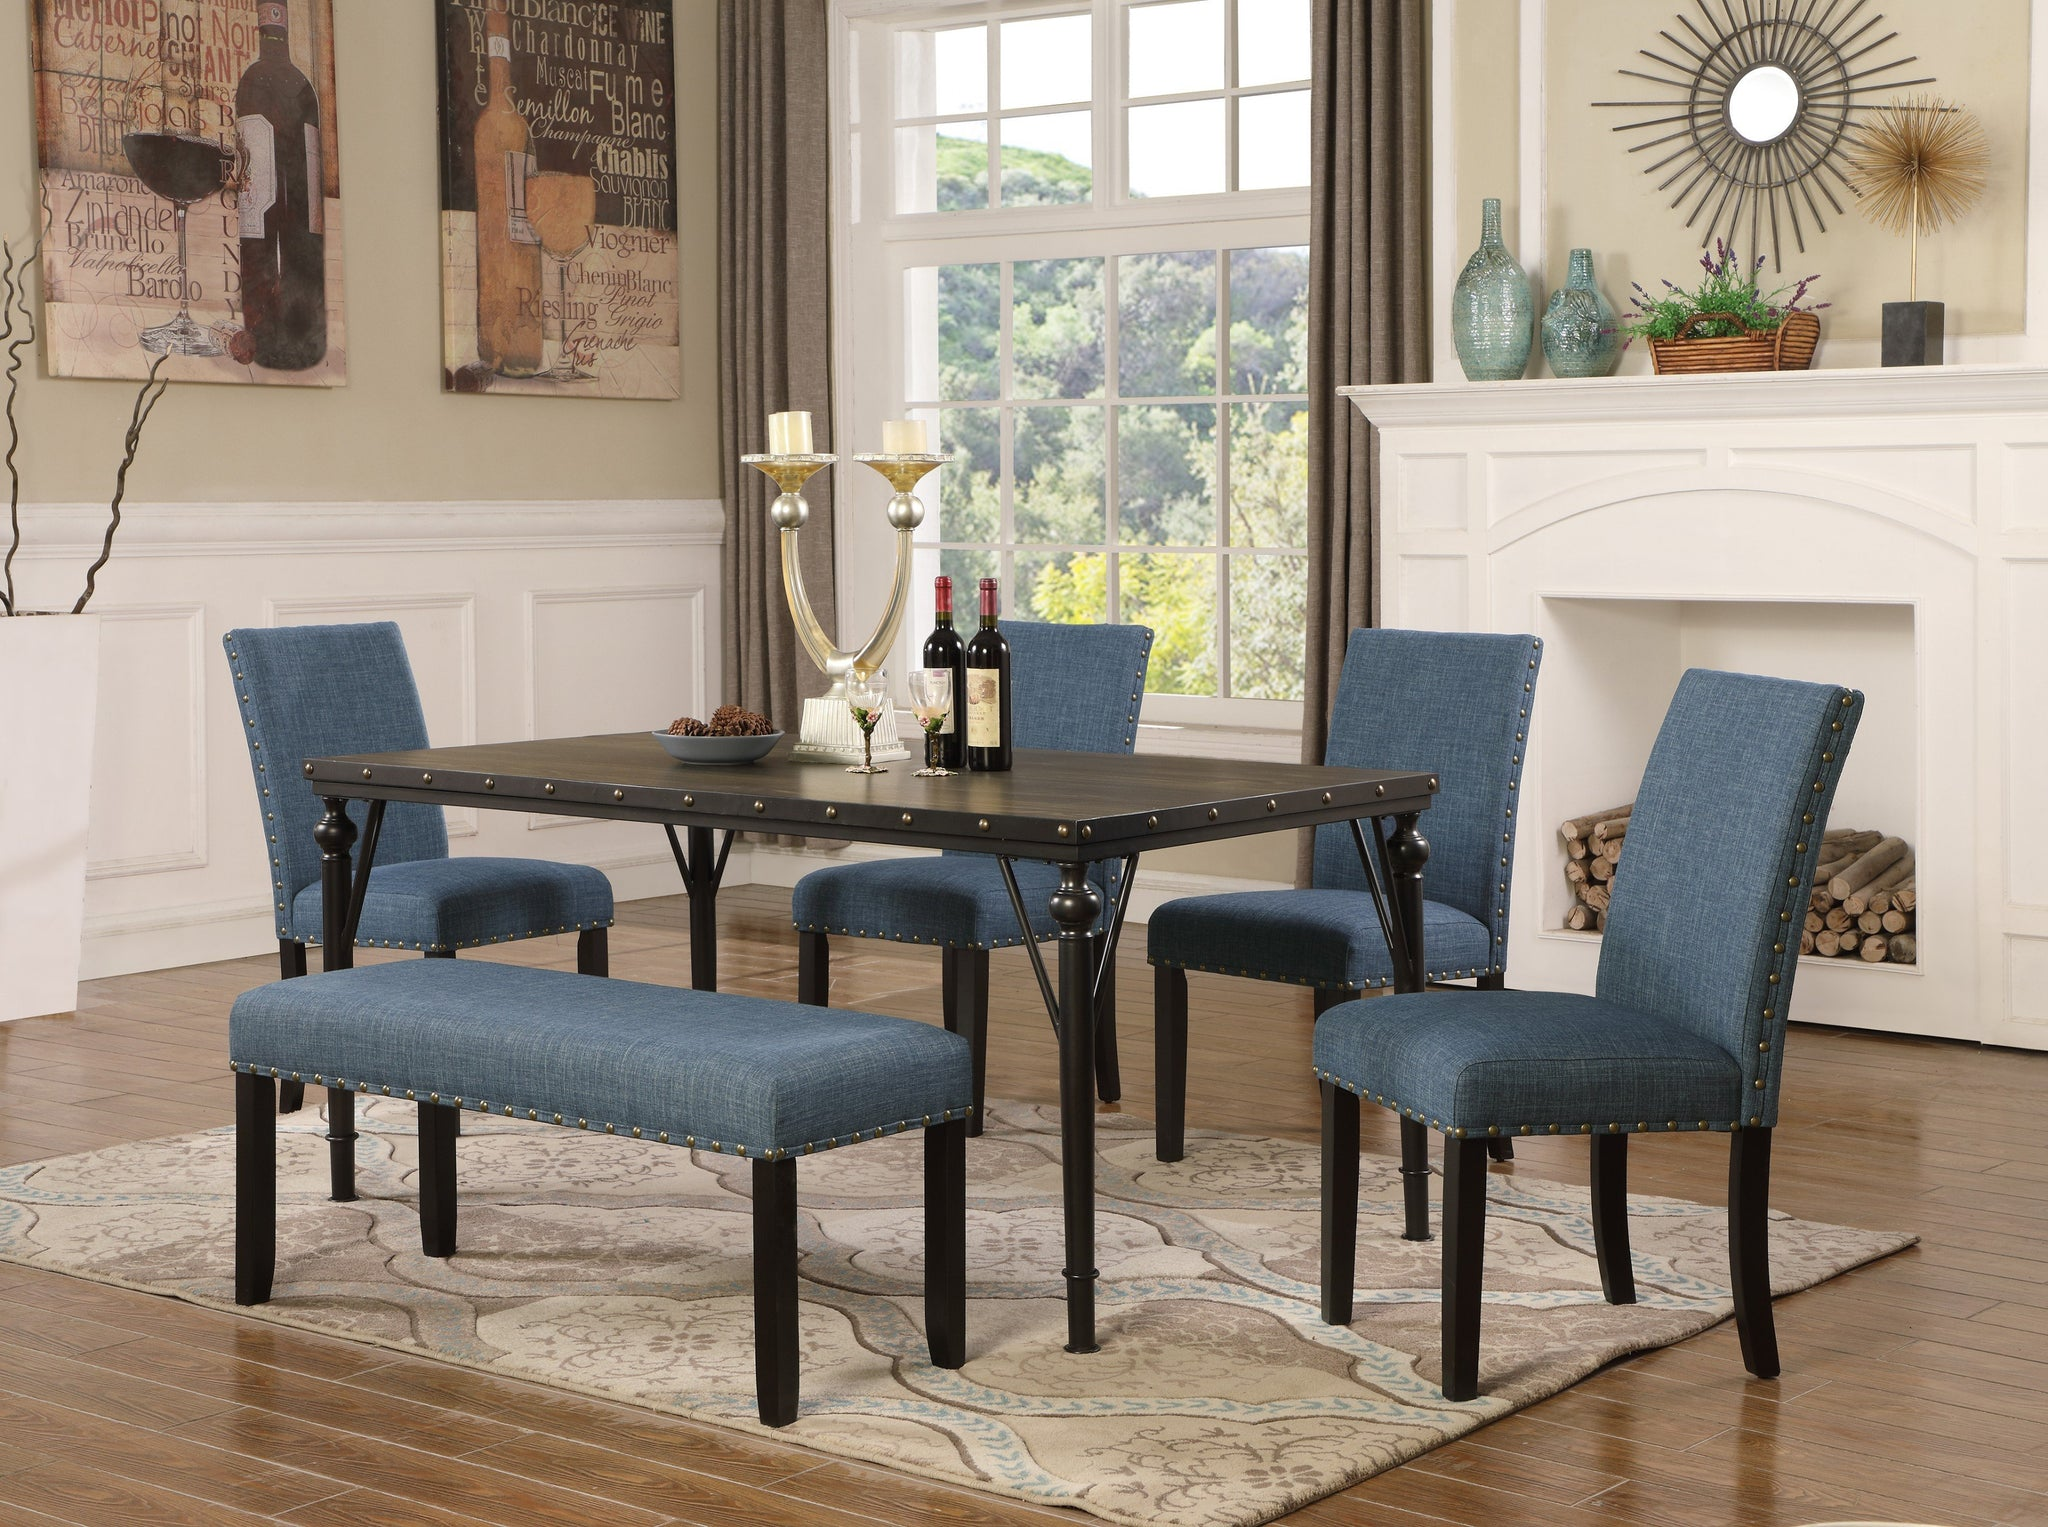 Biony 6-Piece Espresso Wood Dining Set with Blue Fabric Nailhead Chairs and Dinning Bench